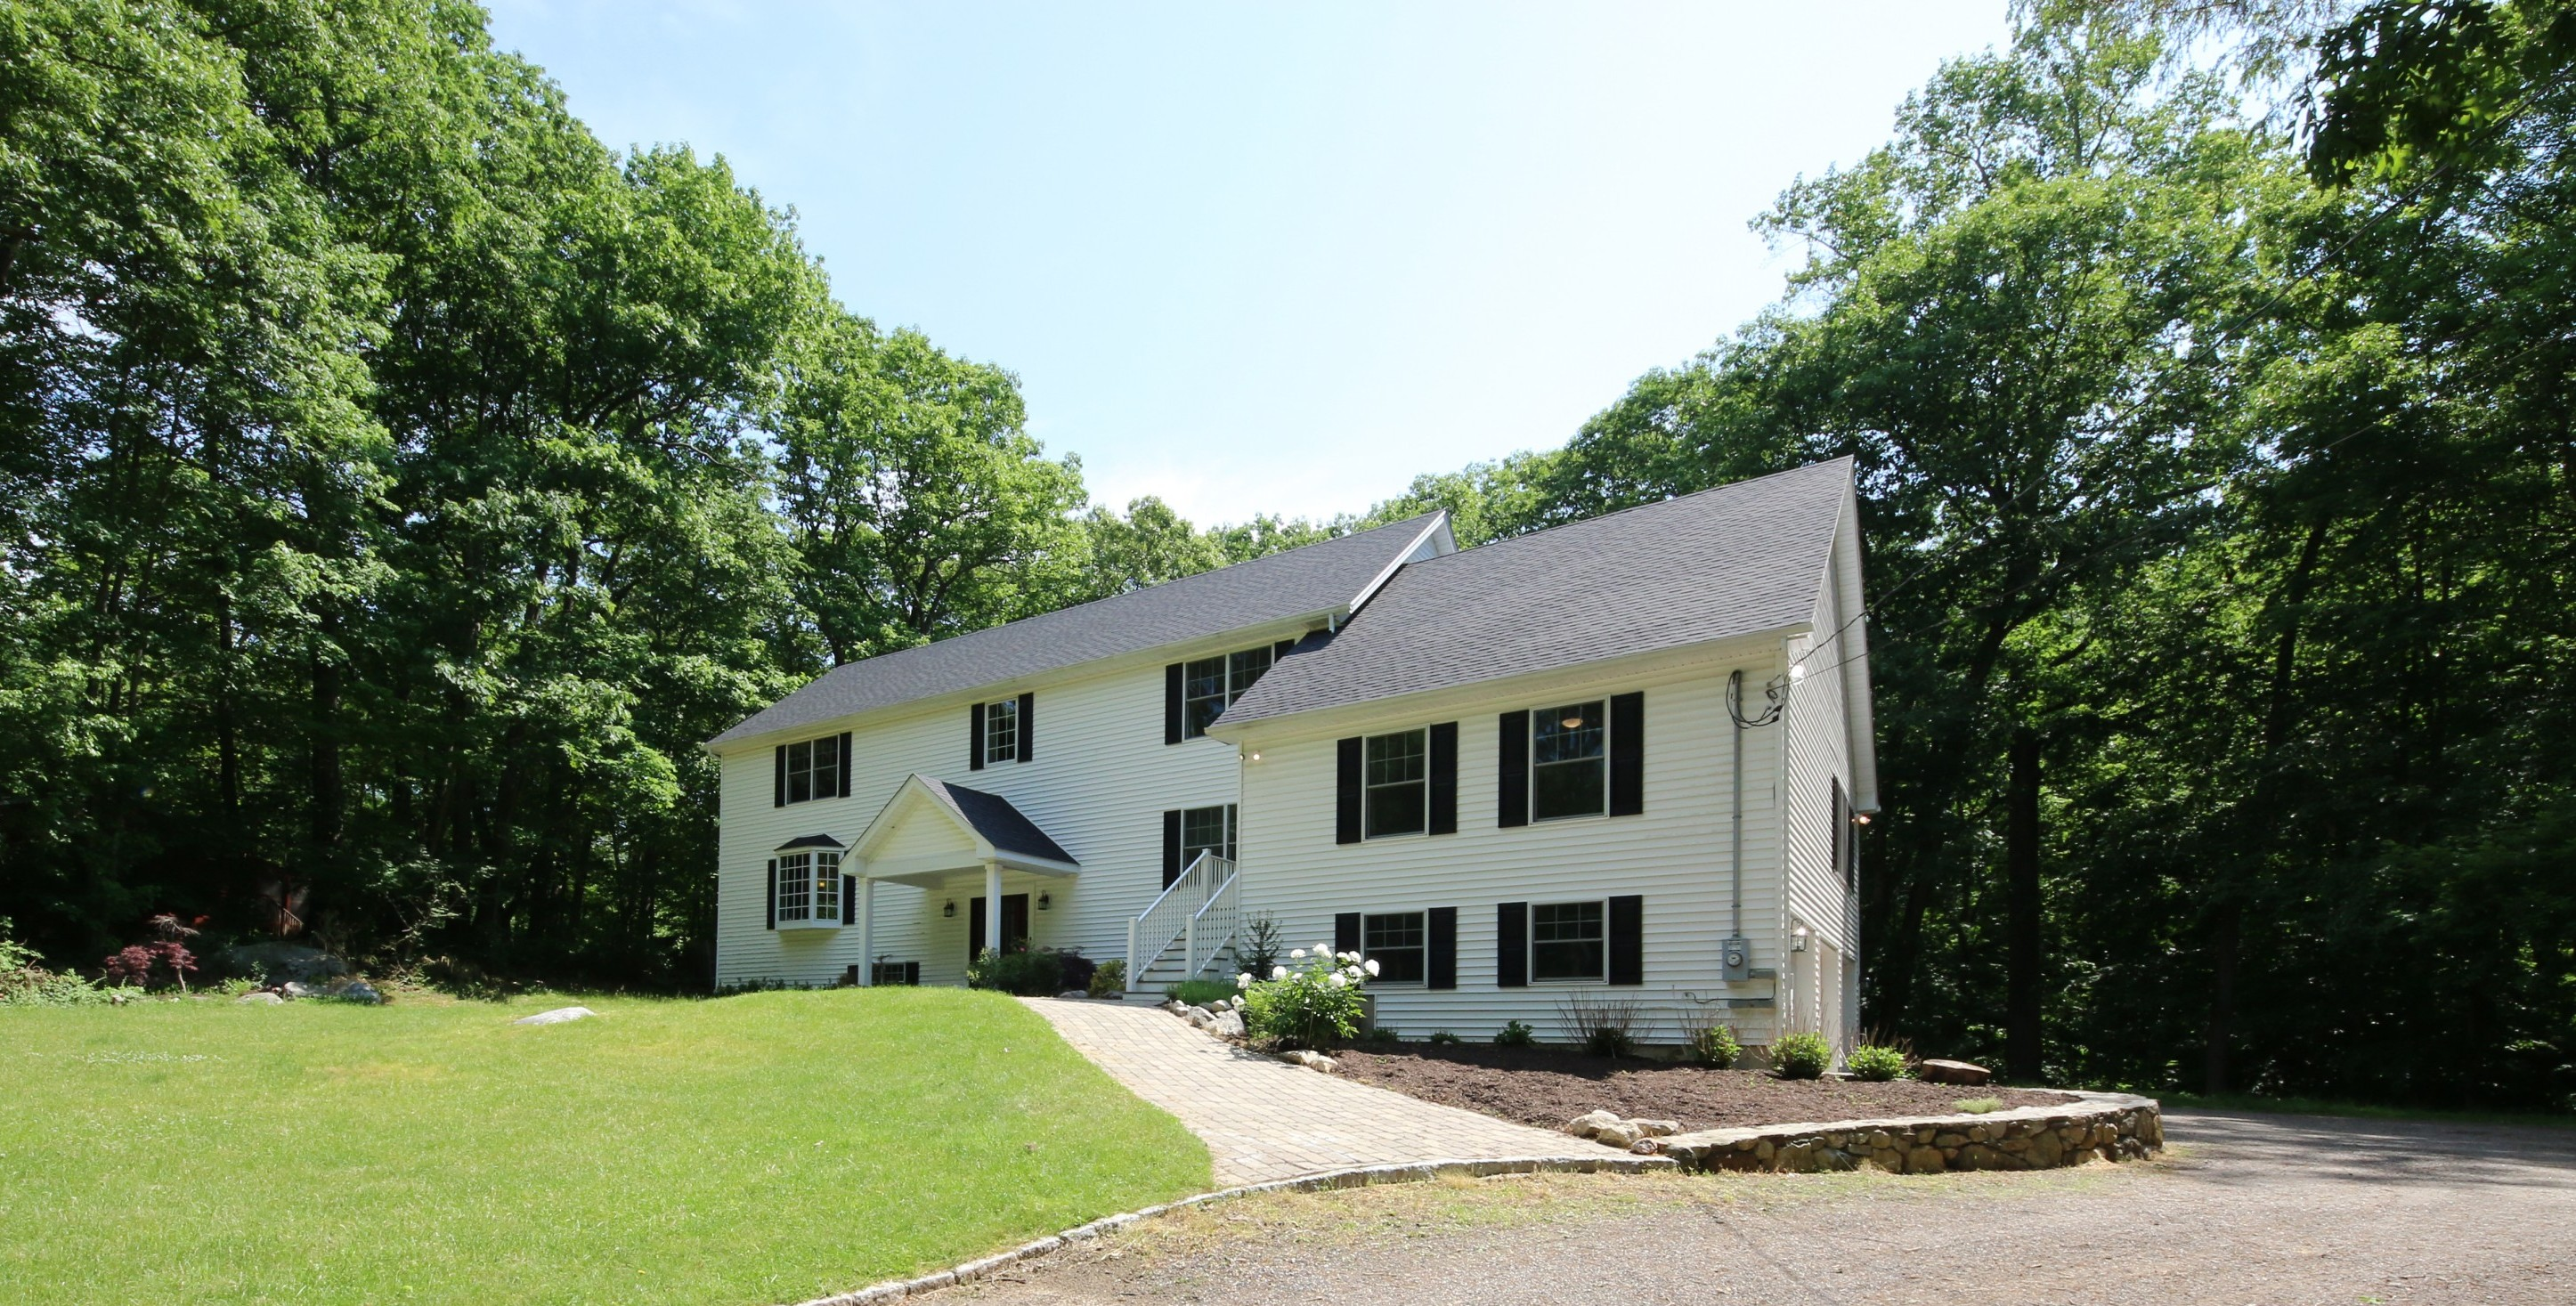 Single Family Home for Sale at Renovated ColonialContemporary 24 Pine Mountain Road Redding, Connecticut 06896 United States